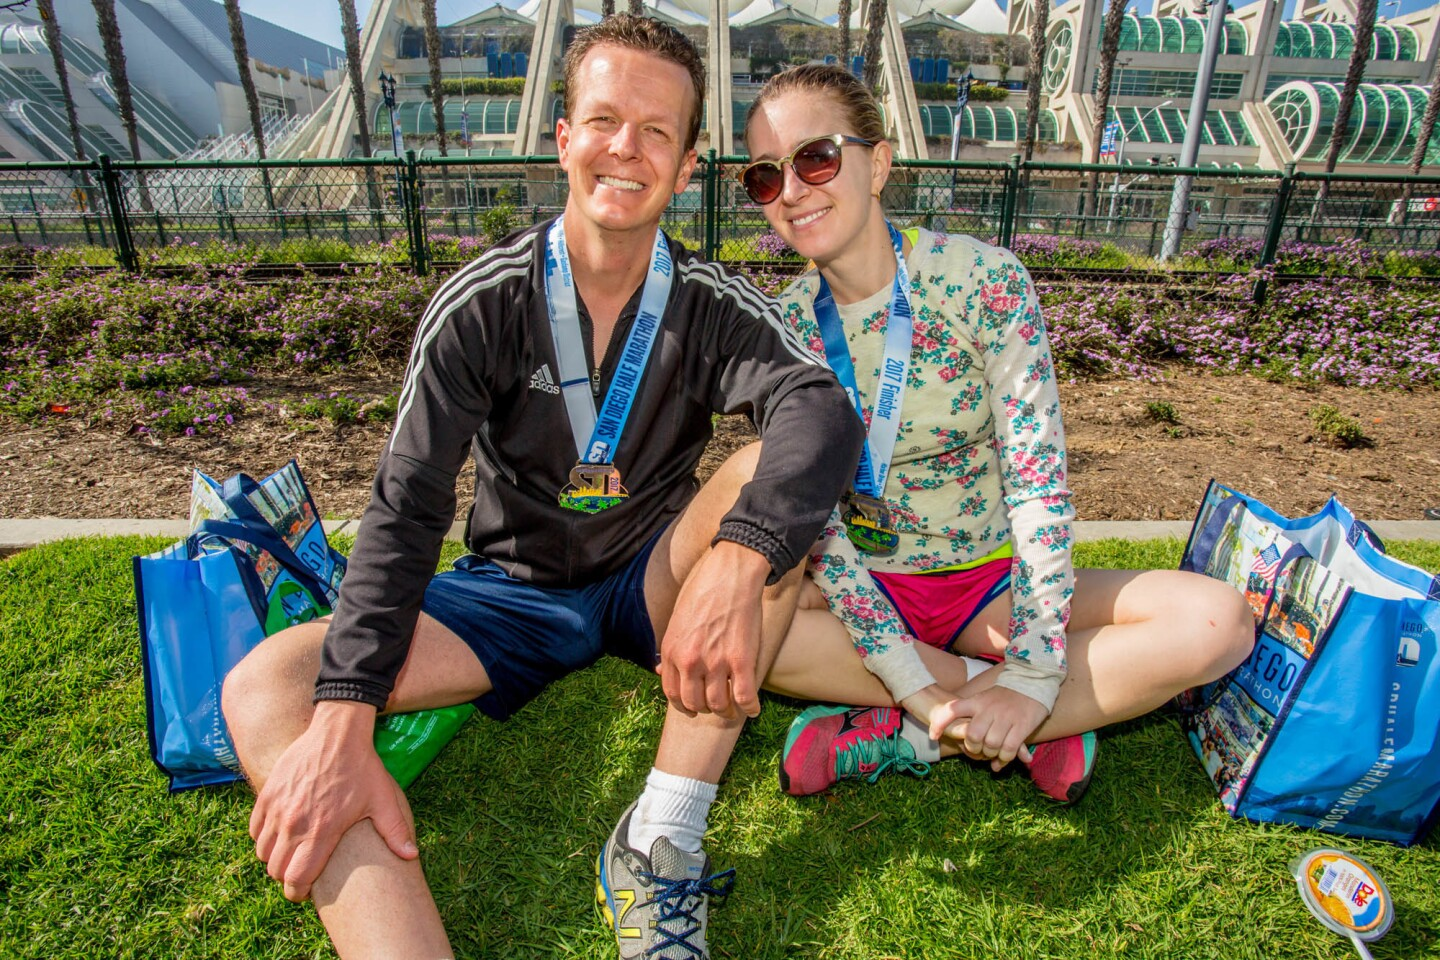 Running 13.1 miles is one way of exploring San Diego and that's just what these runners did during the San Diego Half Marathon on Sunday, March 12, 2017. (Bradley Schweit)